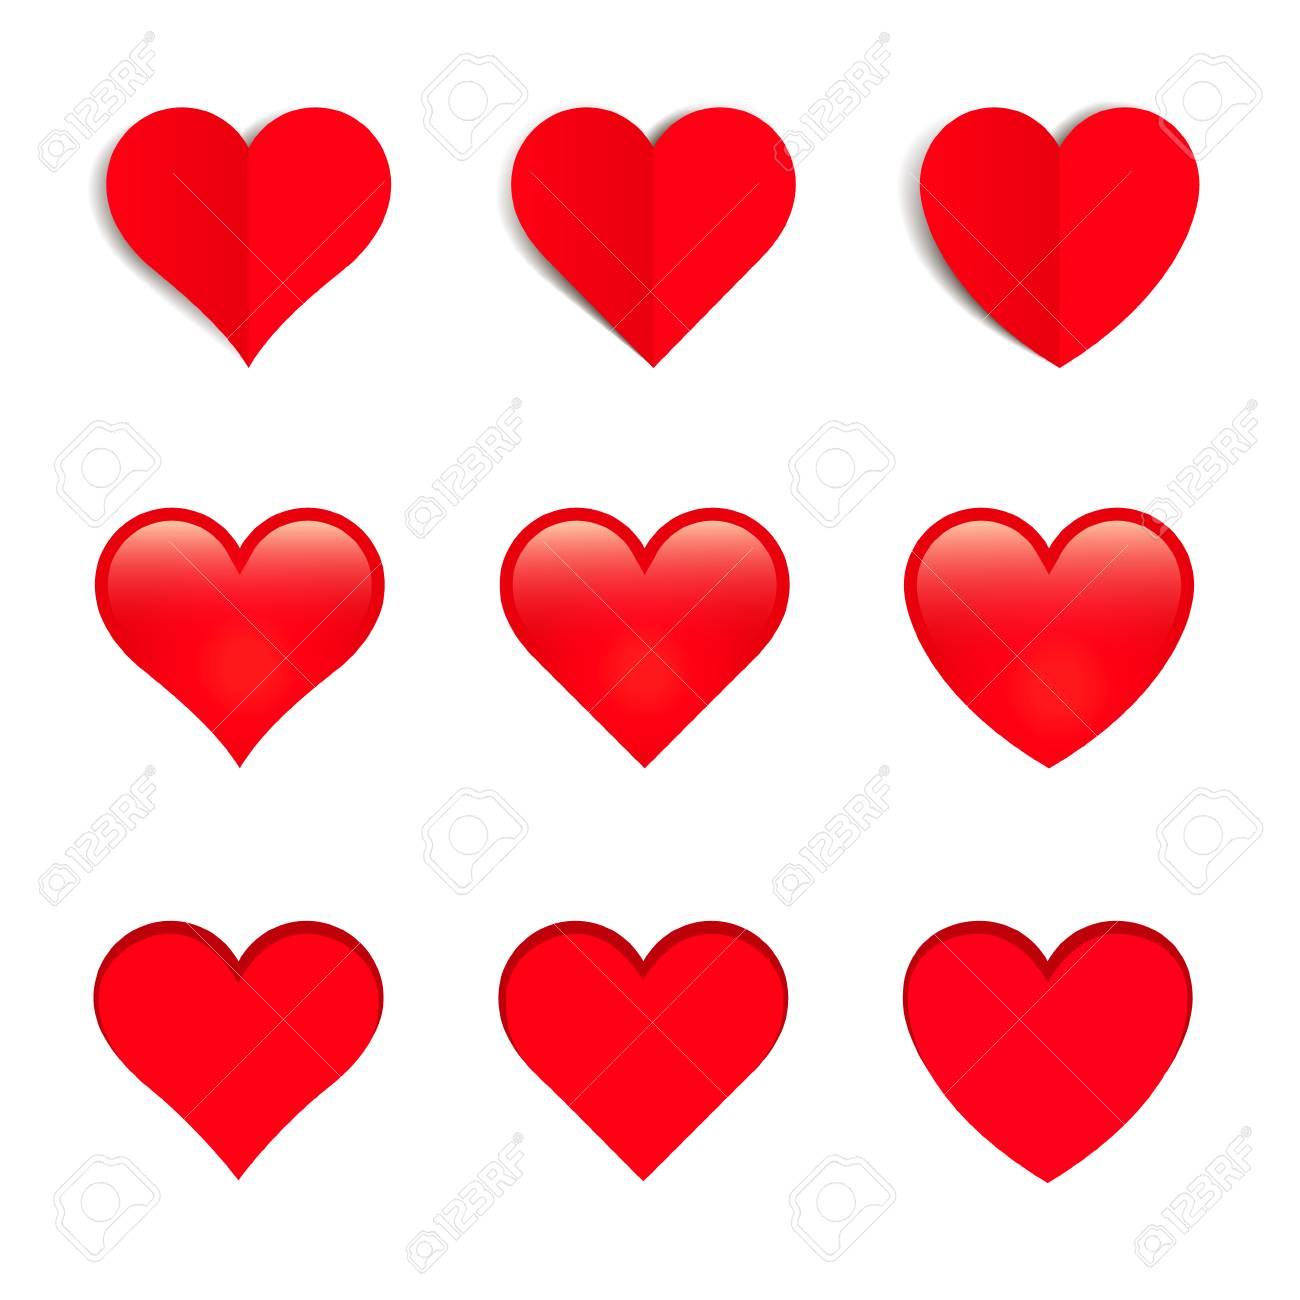 red vector hearts isolated on white background royalty free rh 123rf com free vector heart hands free vector heart download